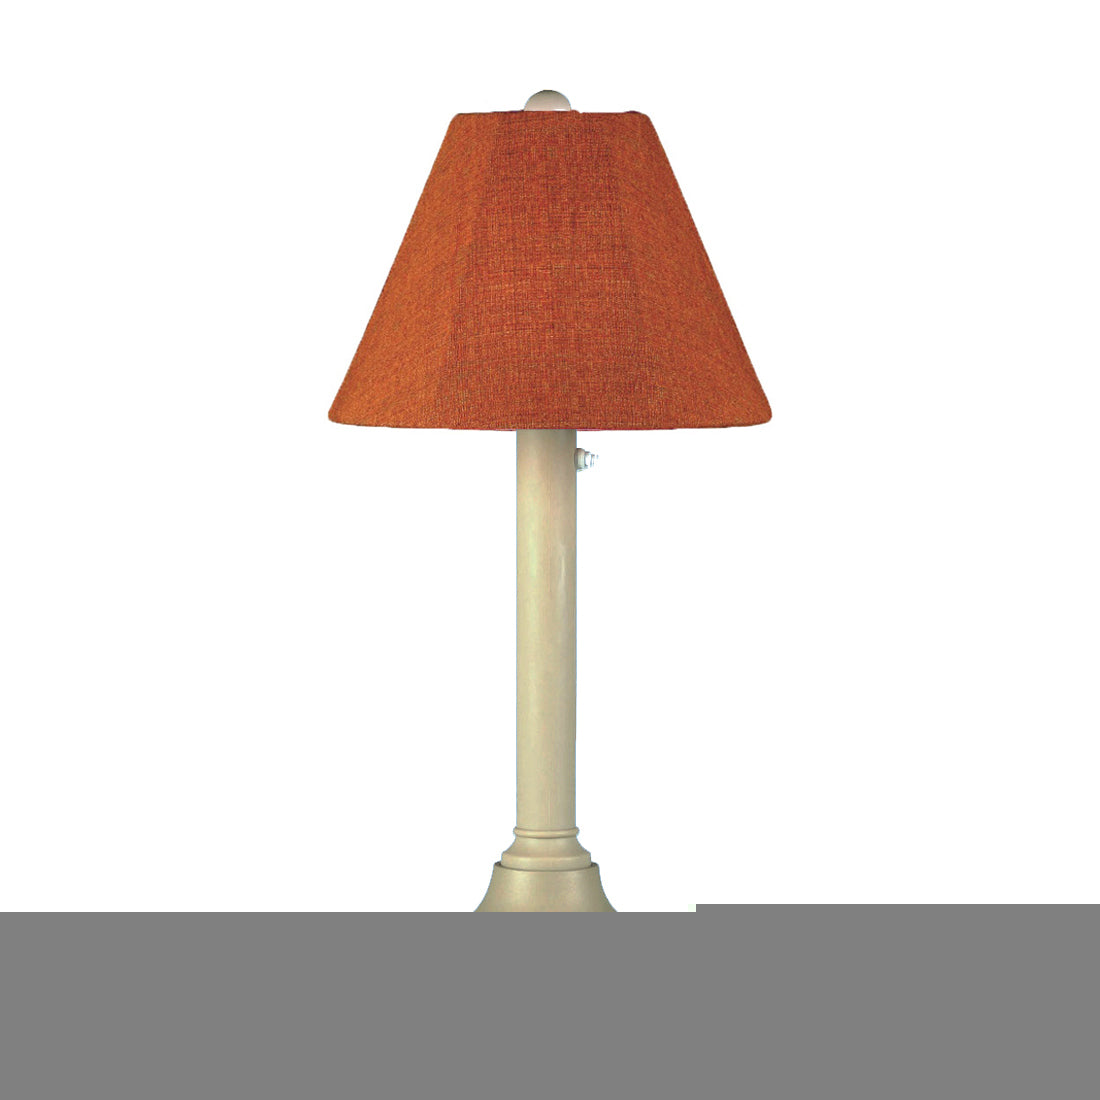 "San Juan 30"" Table Lamp 30125 with 2"" bisque body and chili linen Sunbrella shade fabric"